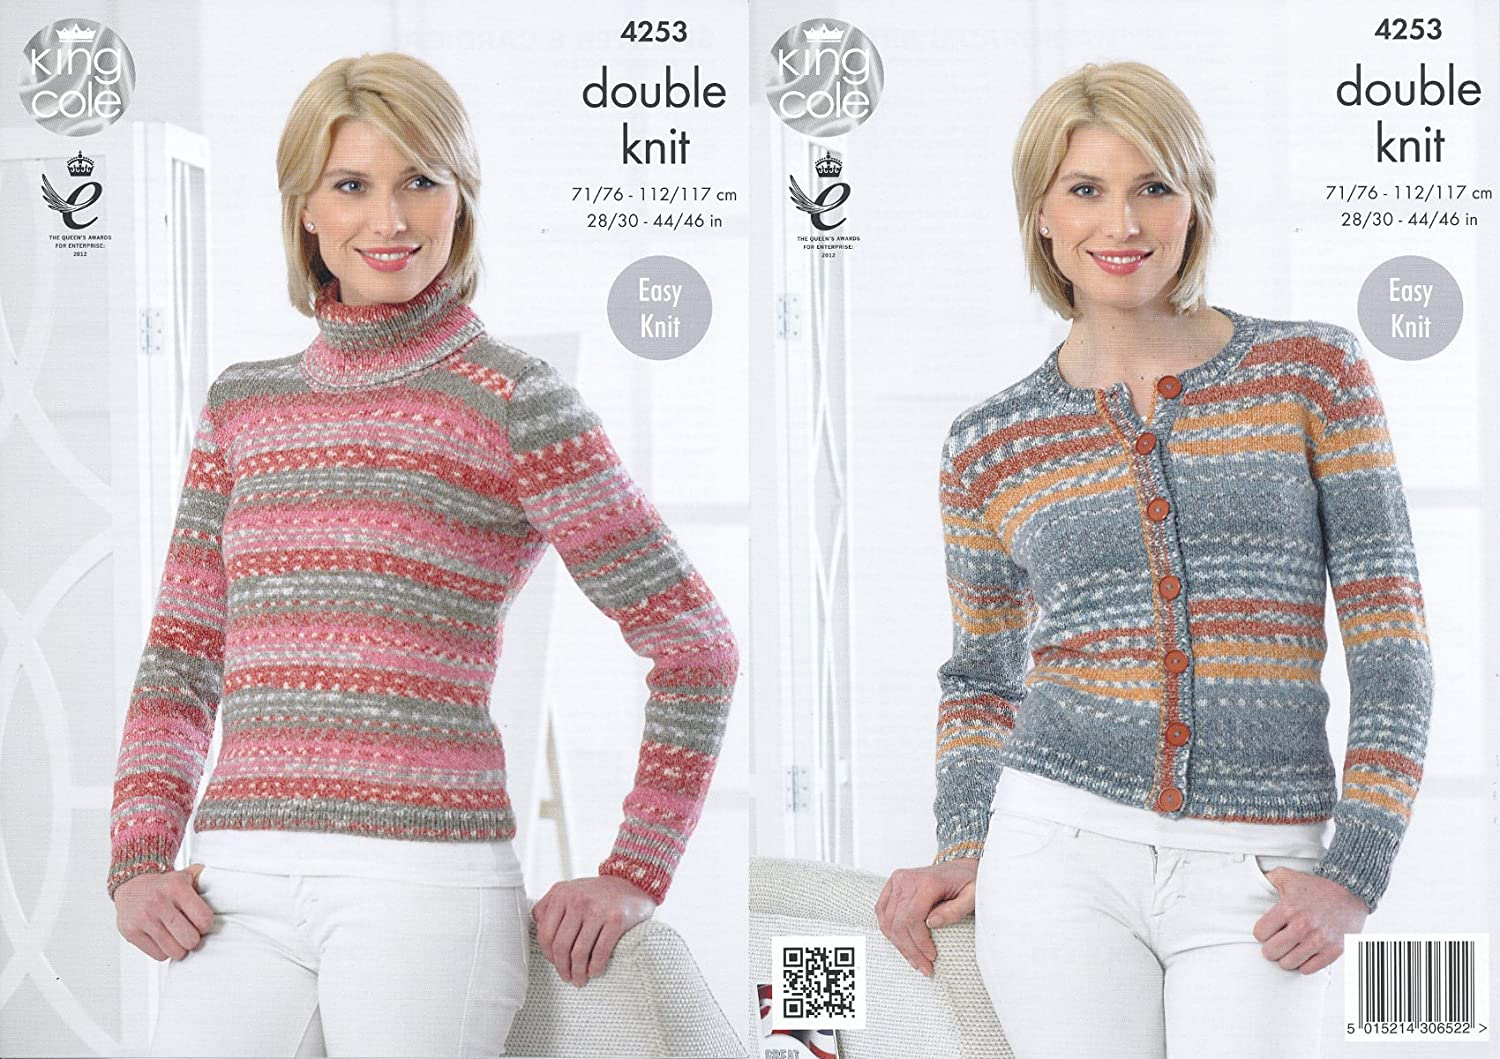 King Cole Ladies Double Knitting Pattern Womens Polo Neck Sweater